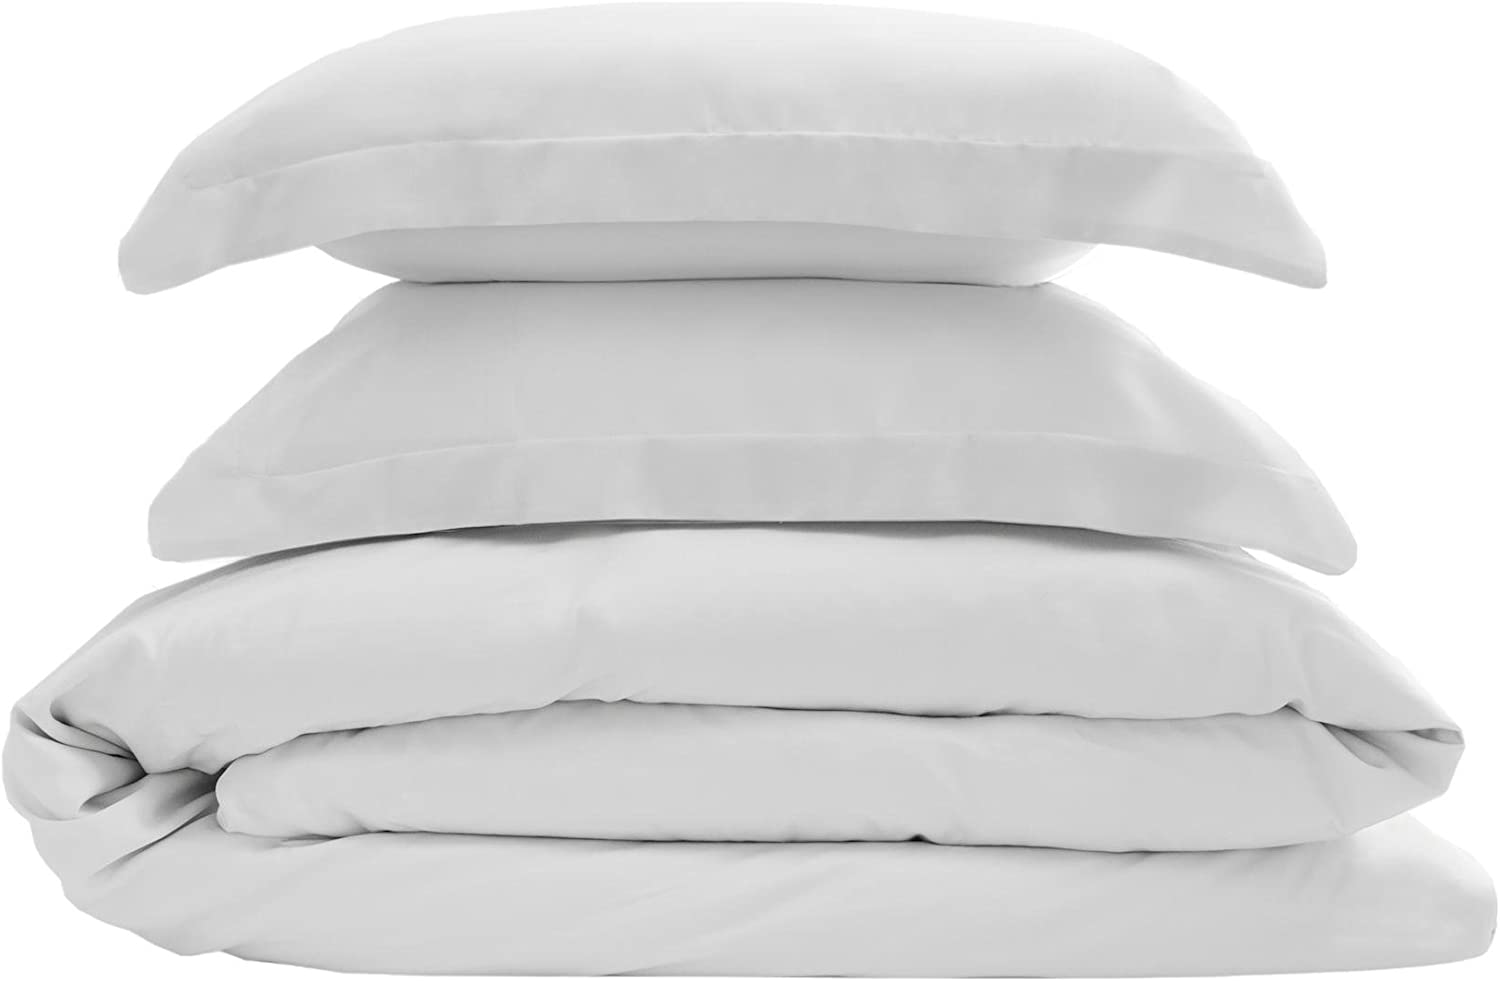 Elite Home Products 300-Thread-Count 100% Rayon Bamboo Duvet Cover & Sham 3-Piece Set, Sateen Weave & Luxuriously Silky Soft, Twin, White